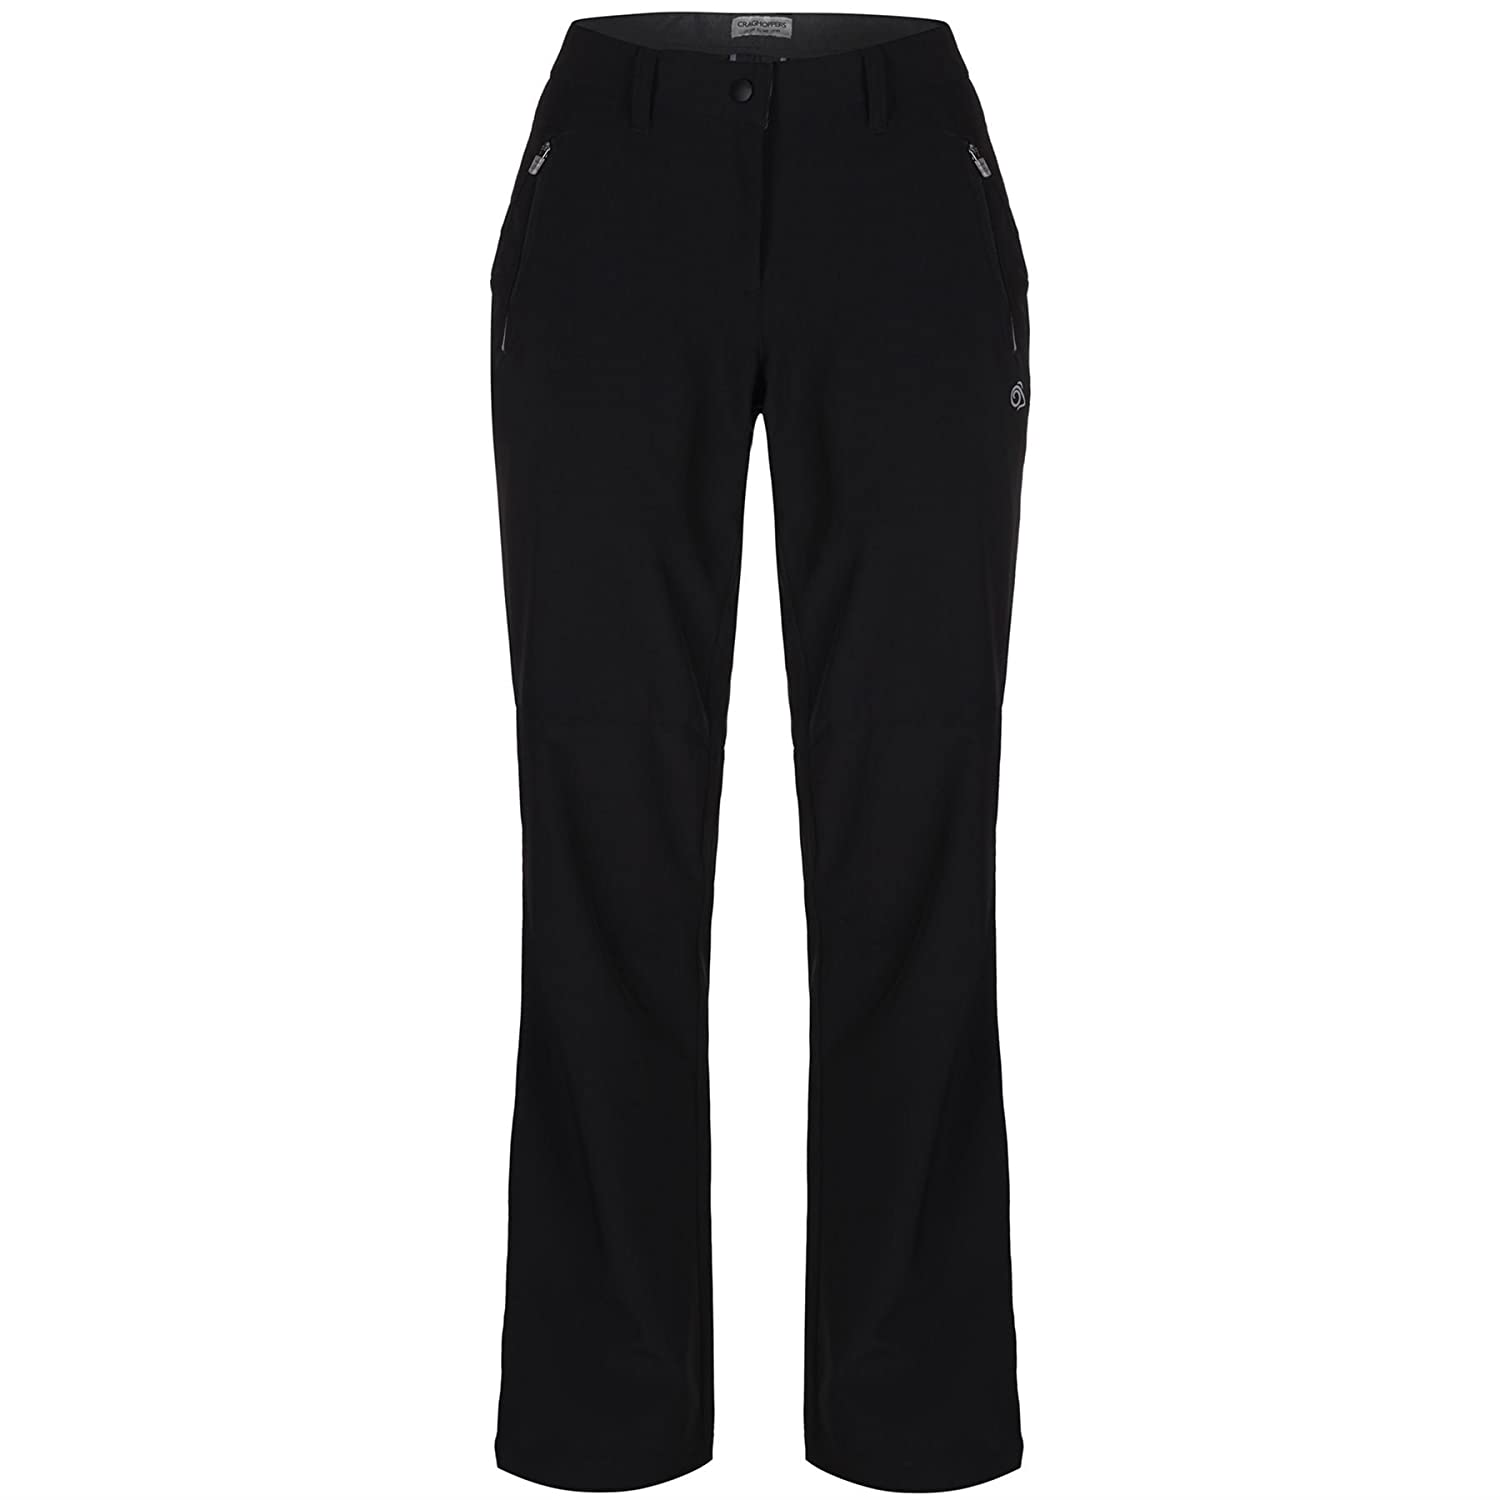 Craghoppers Womens Waterproof Over-Trousers Pro Lite Soft Shell Trousers